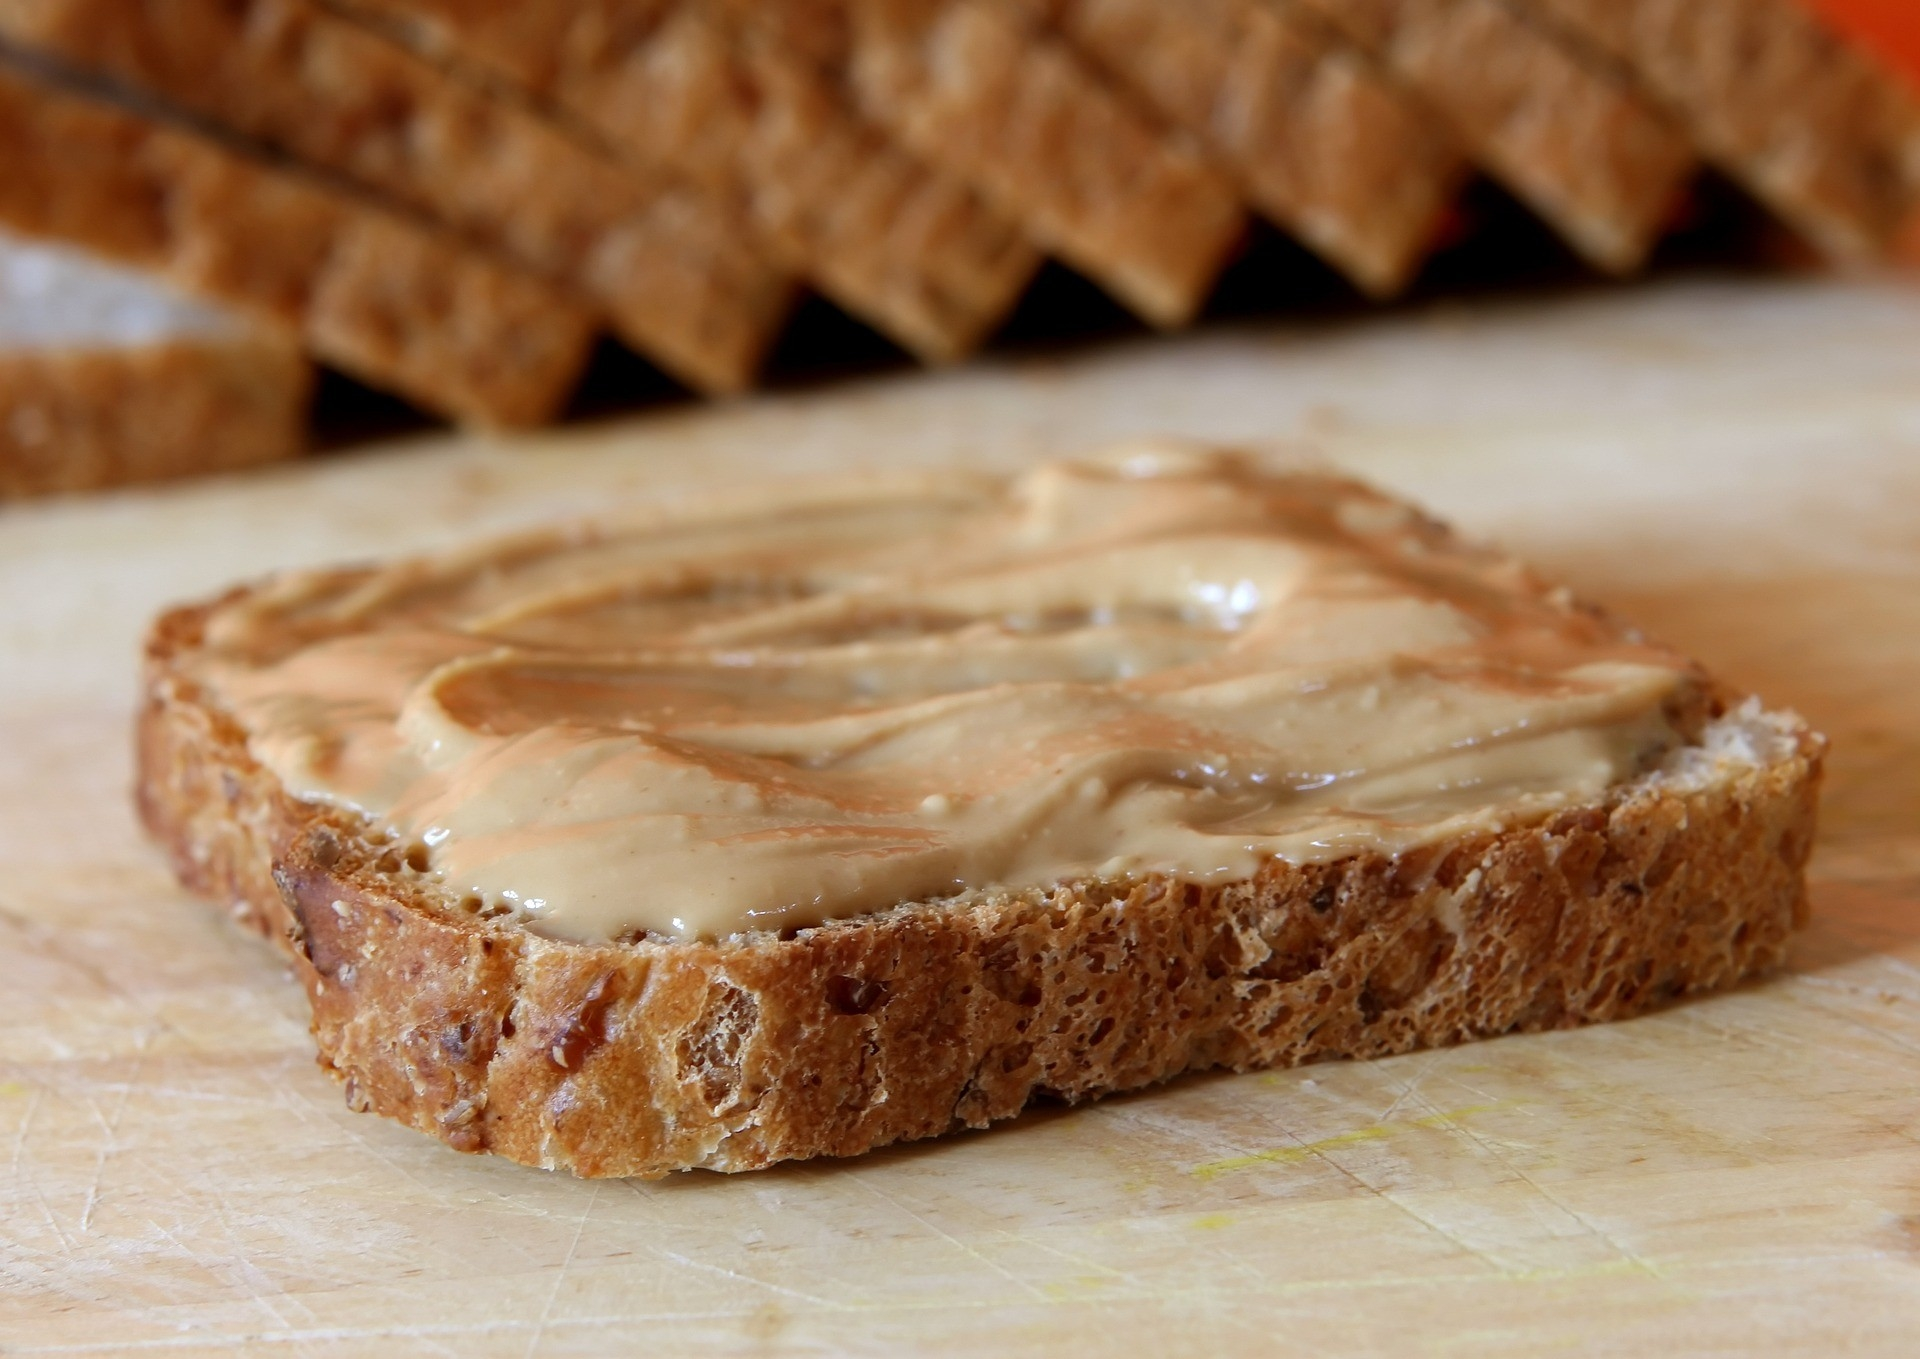 Does Peanut Butter Help You Sleep? This Bedtime Snack Might Give You regarding Does Peanut Butter Help You Sleep 47925